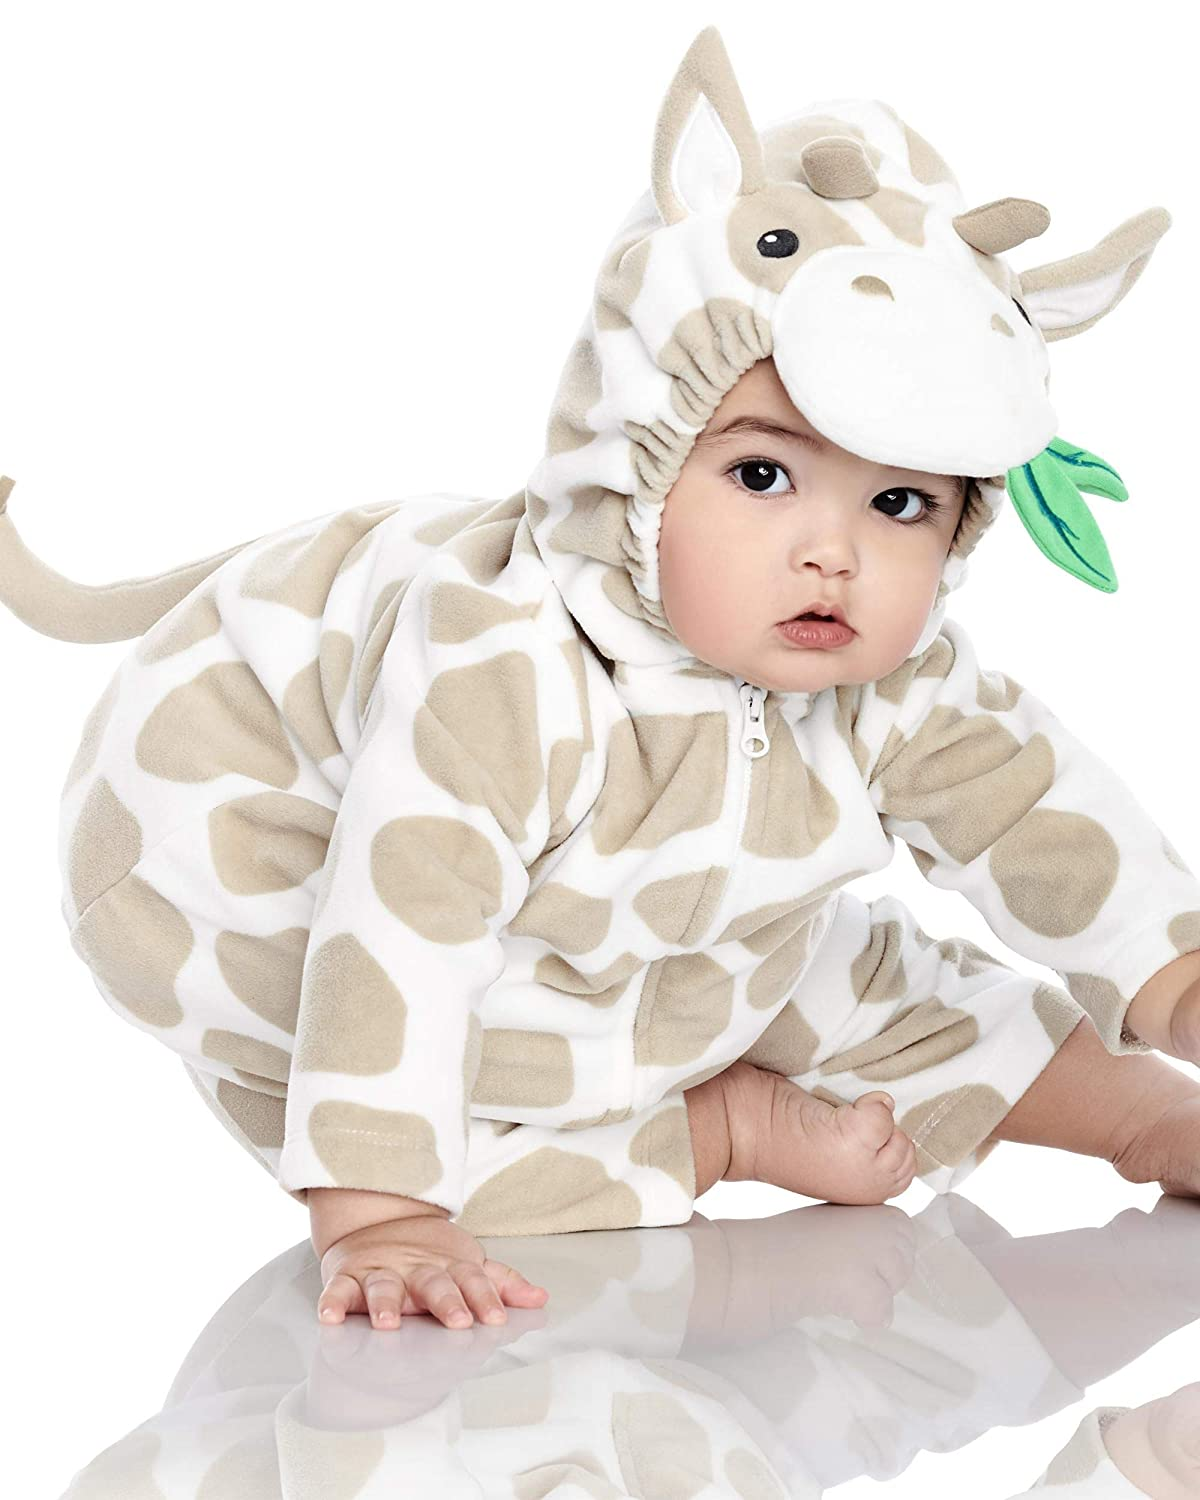 926cb719a Amazon.com  Carter s Halloween Costume Baby 2 Pieces  Clothing